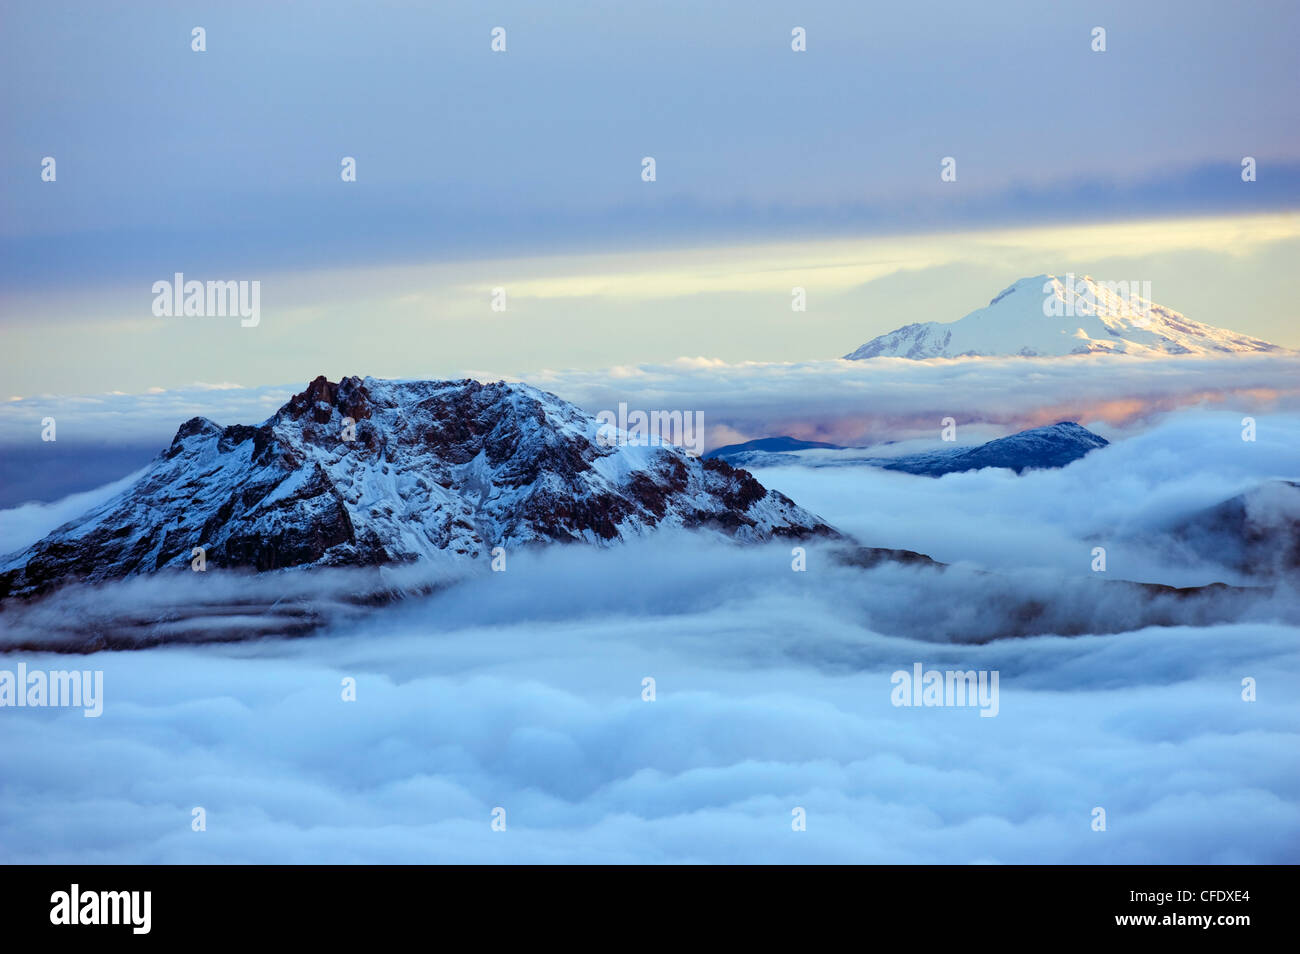 View from Volcan Cotopaxi, 5897m, the highest active volcano in the world, Ecuador, South America - Stock Image